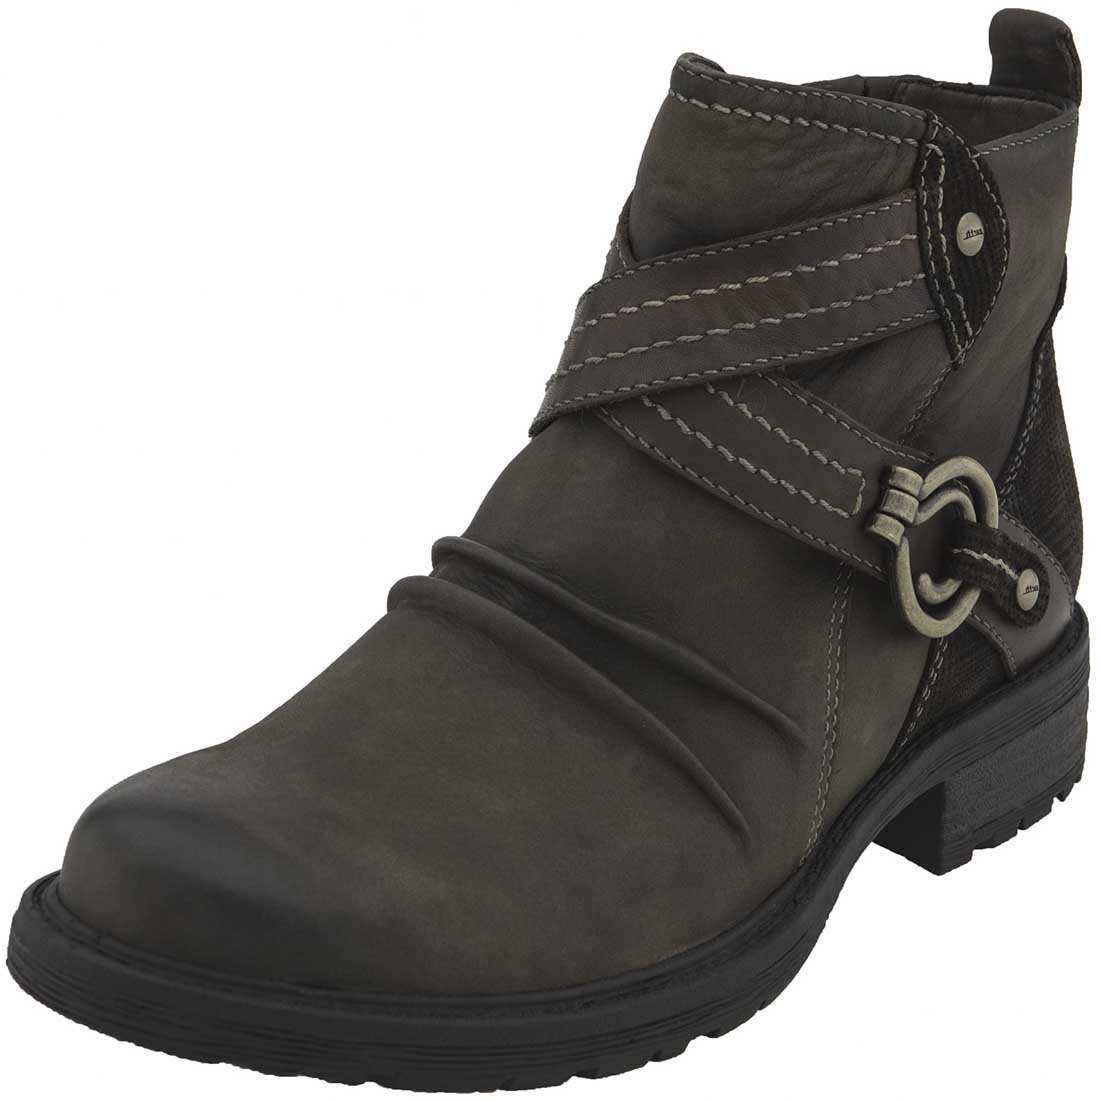 Earth Womens Laurel Leather Almond Toe Ankle Combat Boots B06WRS3YLC 9 B(M) US|Stone Vintage Leather